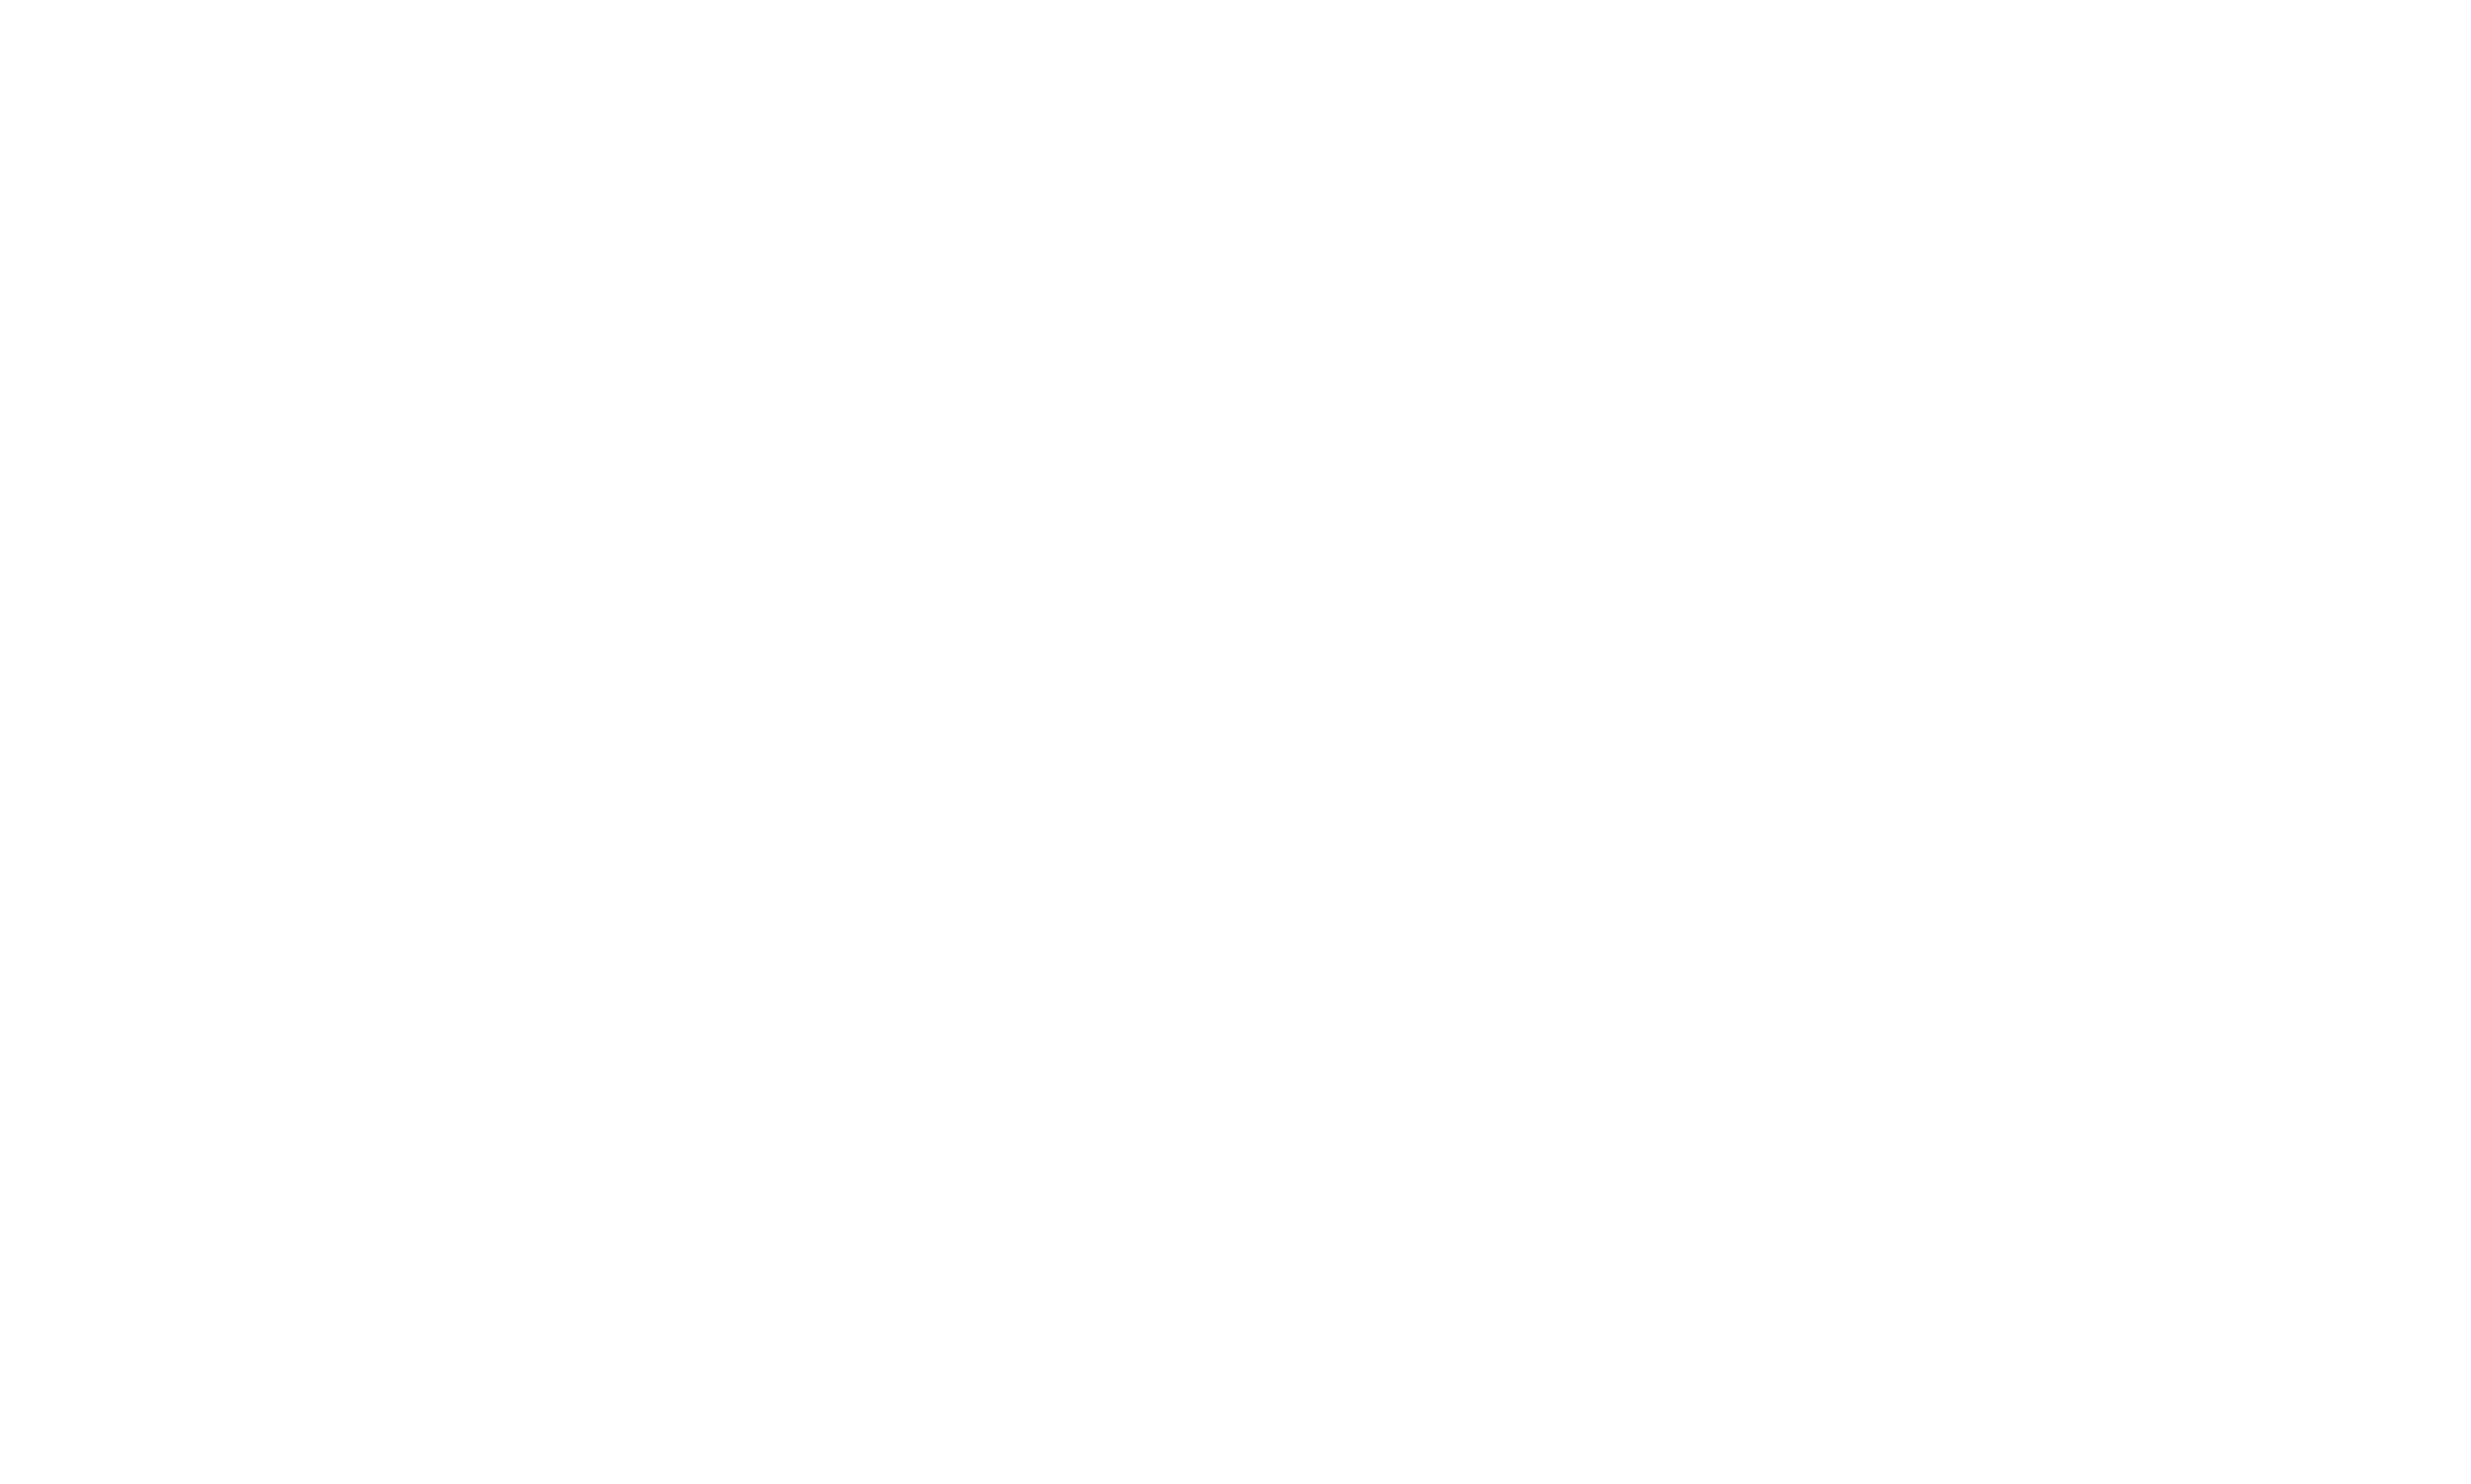 Georgette | Restaurant & Bar in Sonoma, California - Logo White